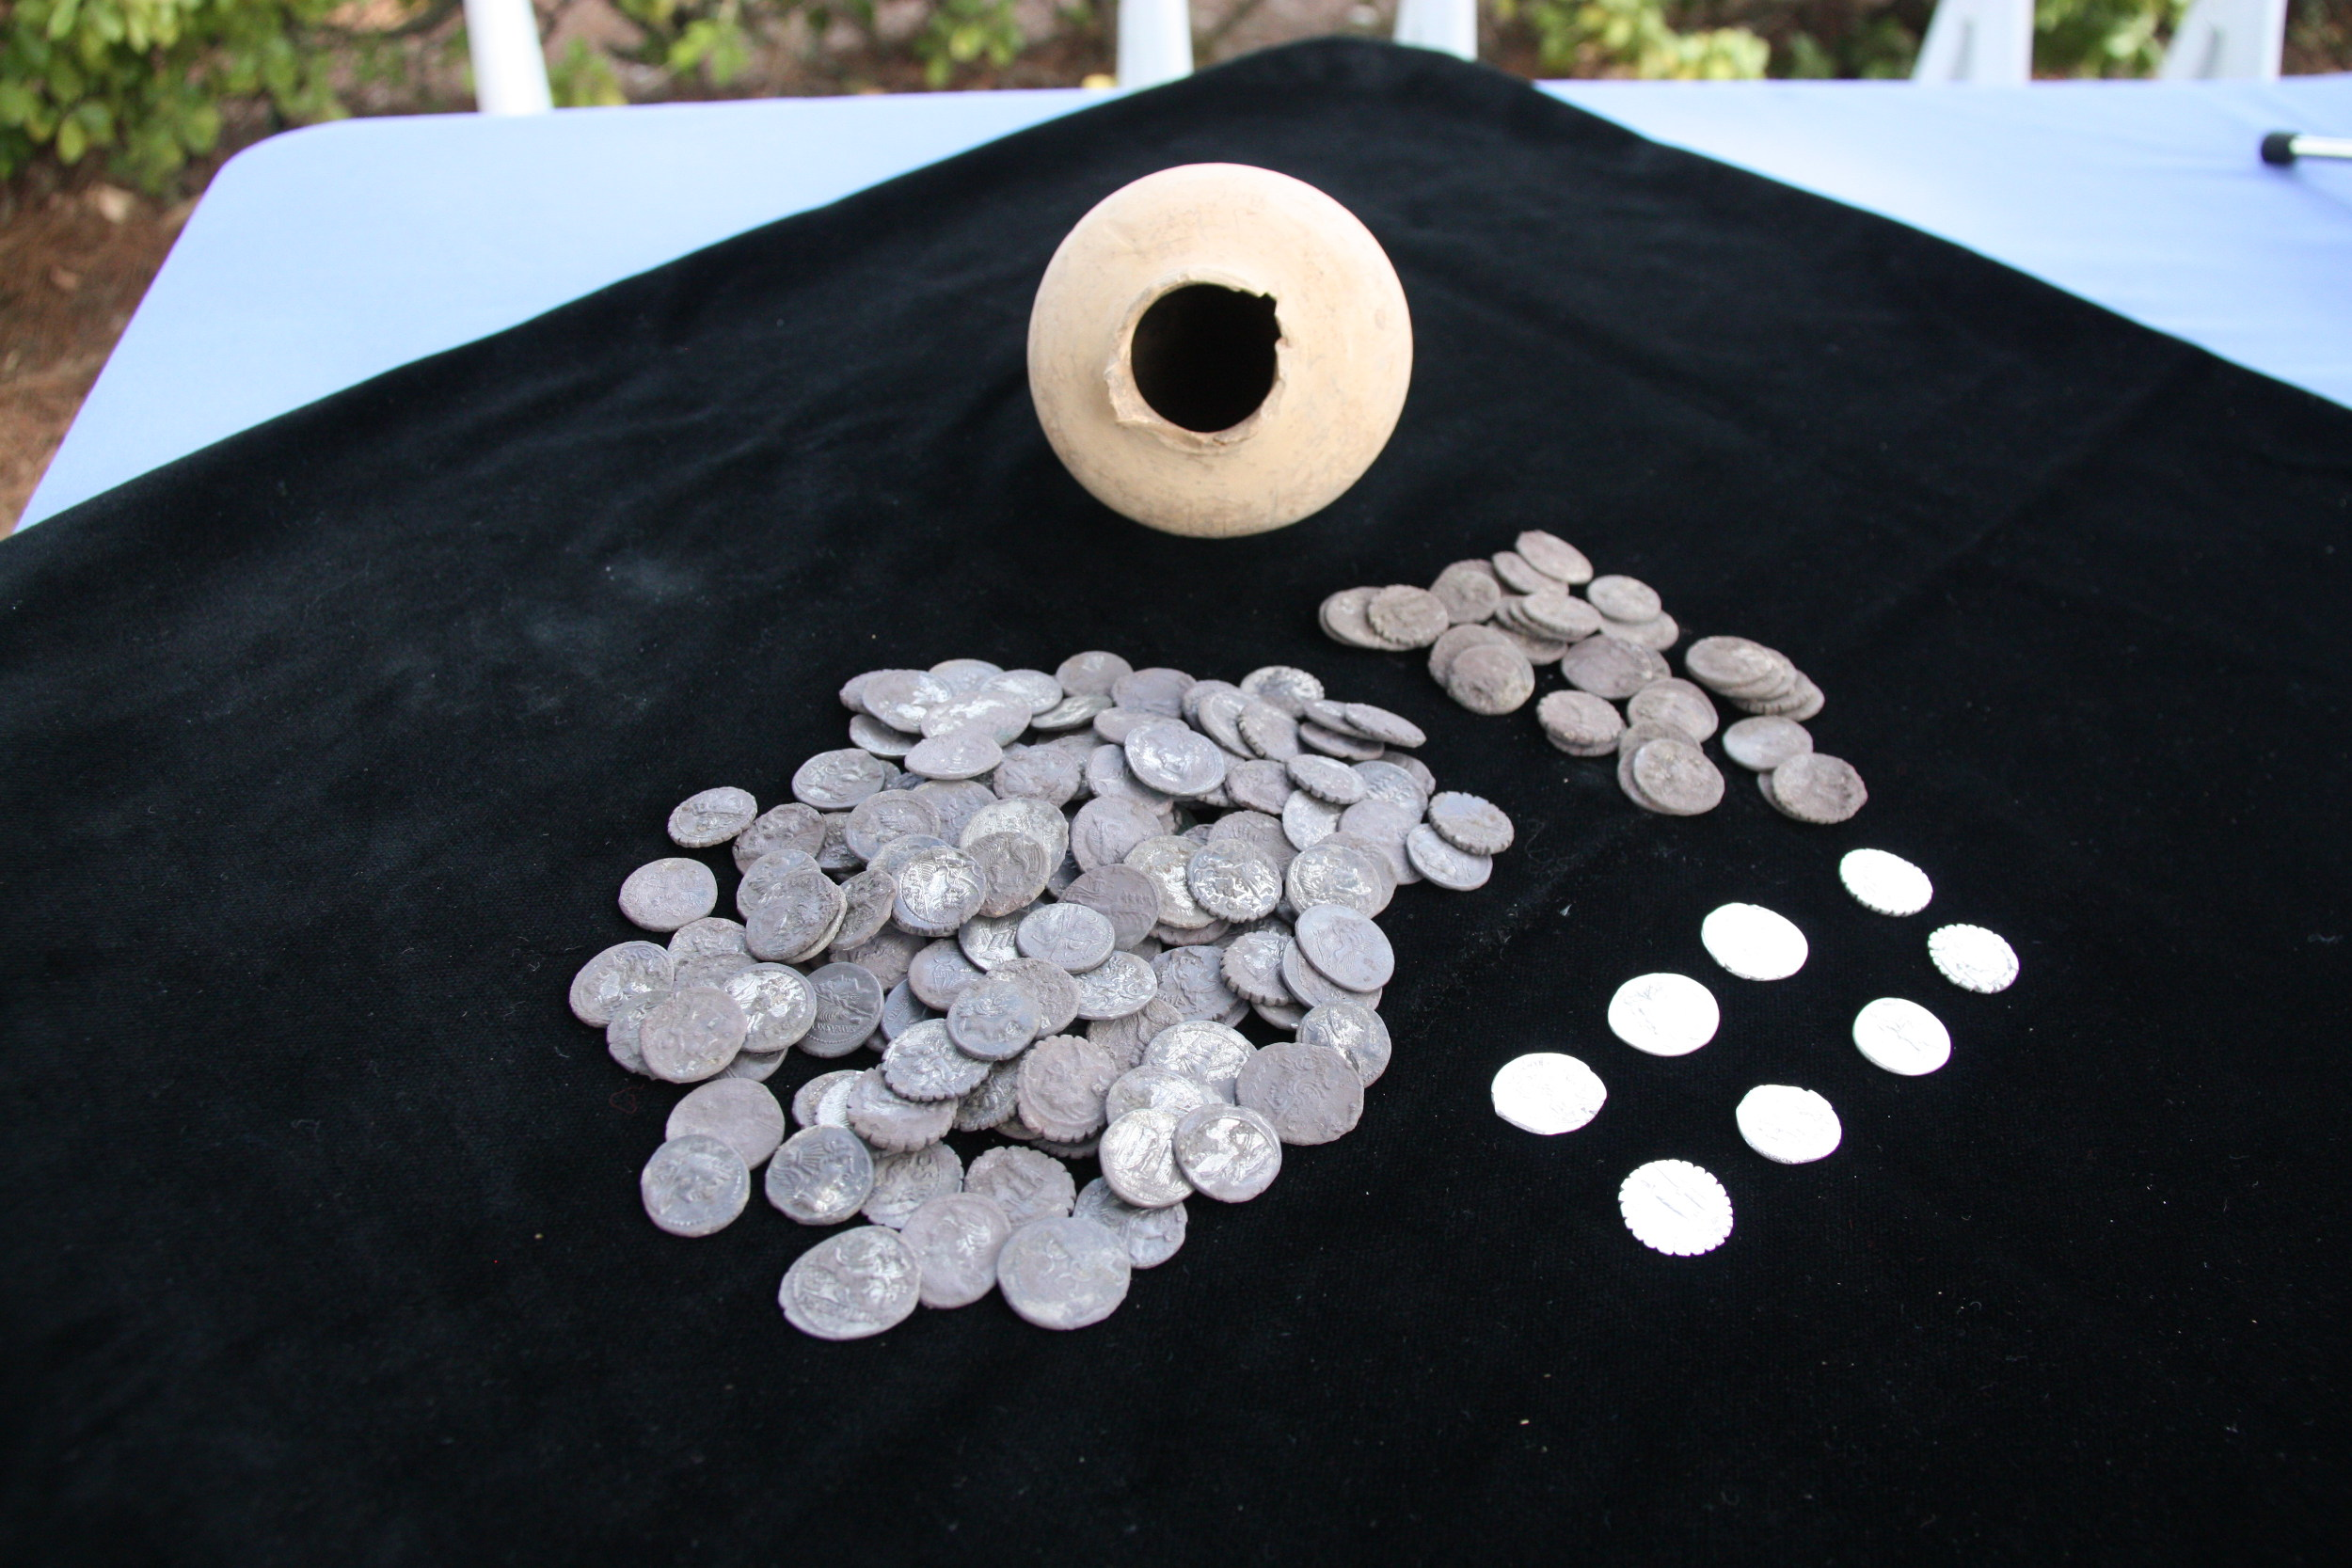 Roman coin hoard found by students in Spain